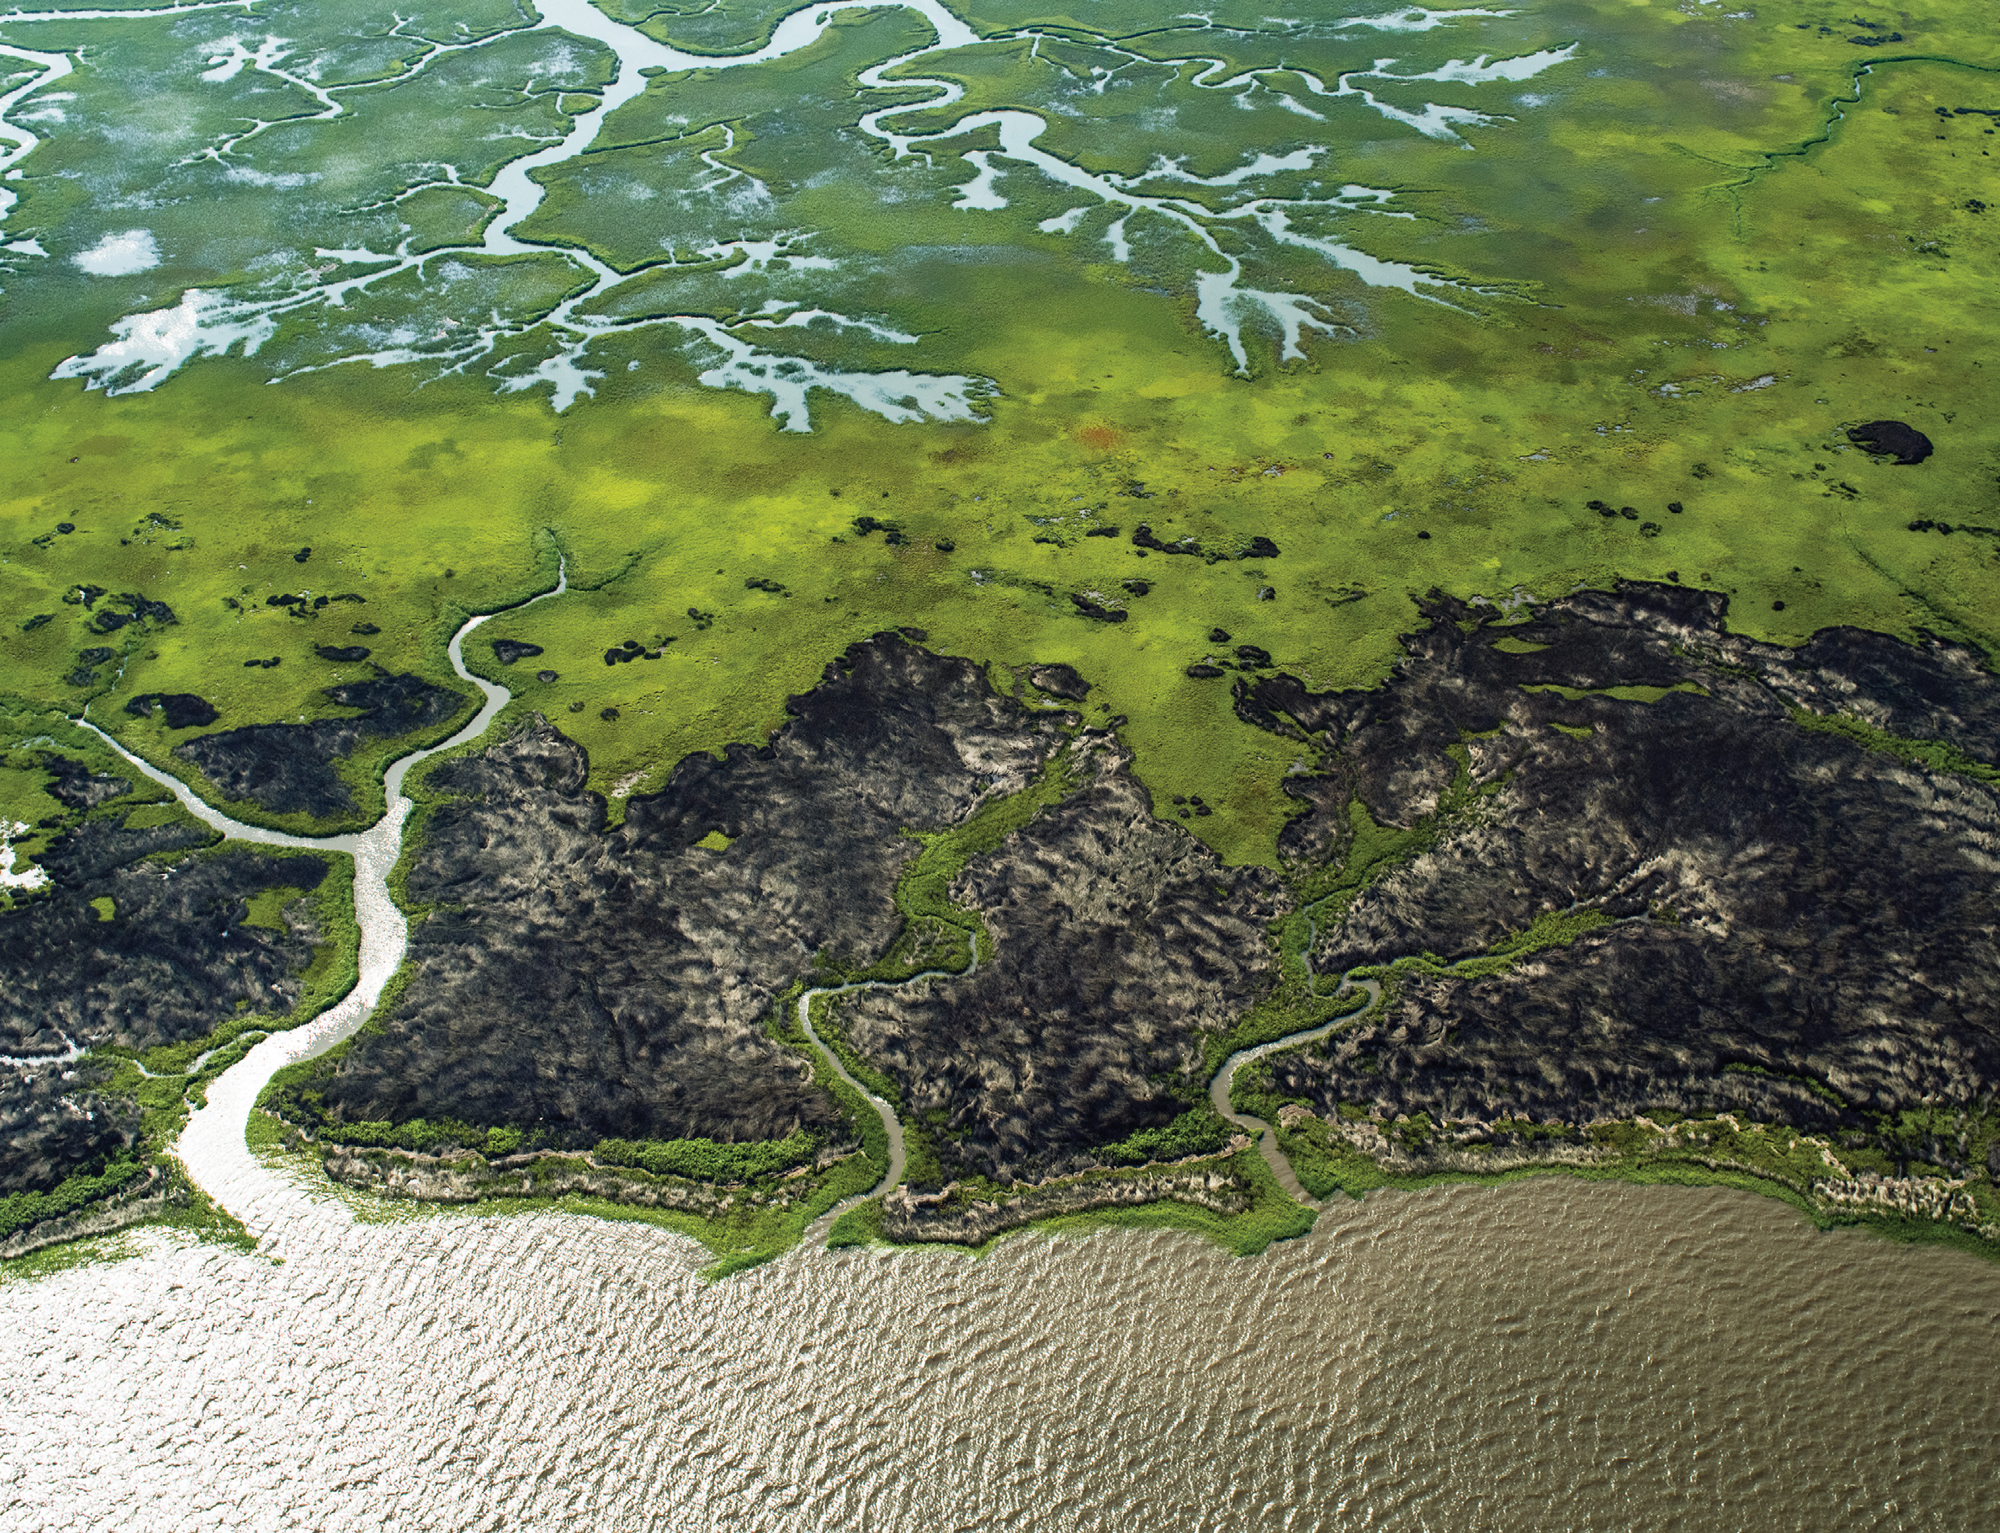 Coastal Wetlands Meet the Ocean (Winyah Bay National Estuarine Research Reserve; July 2, 2015)